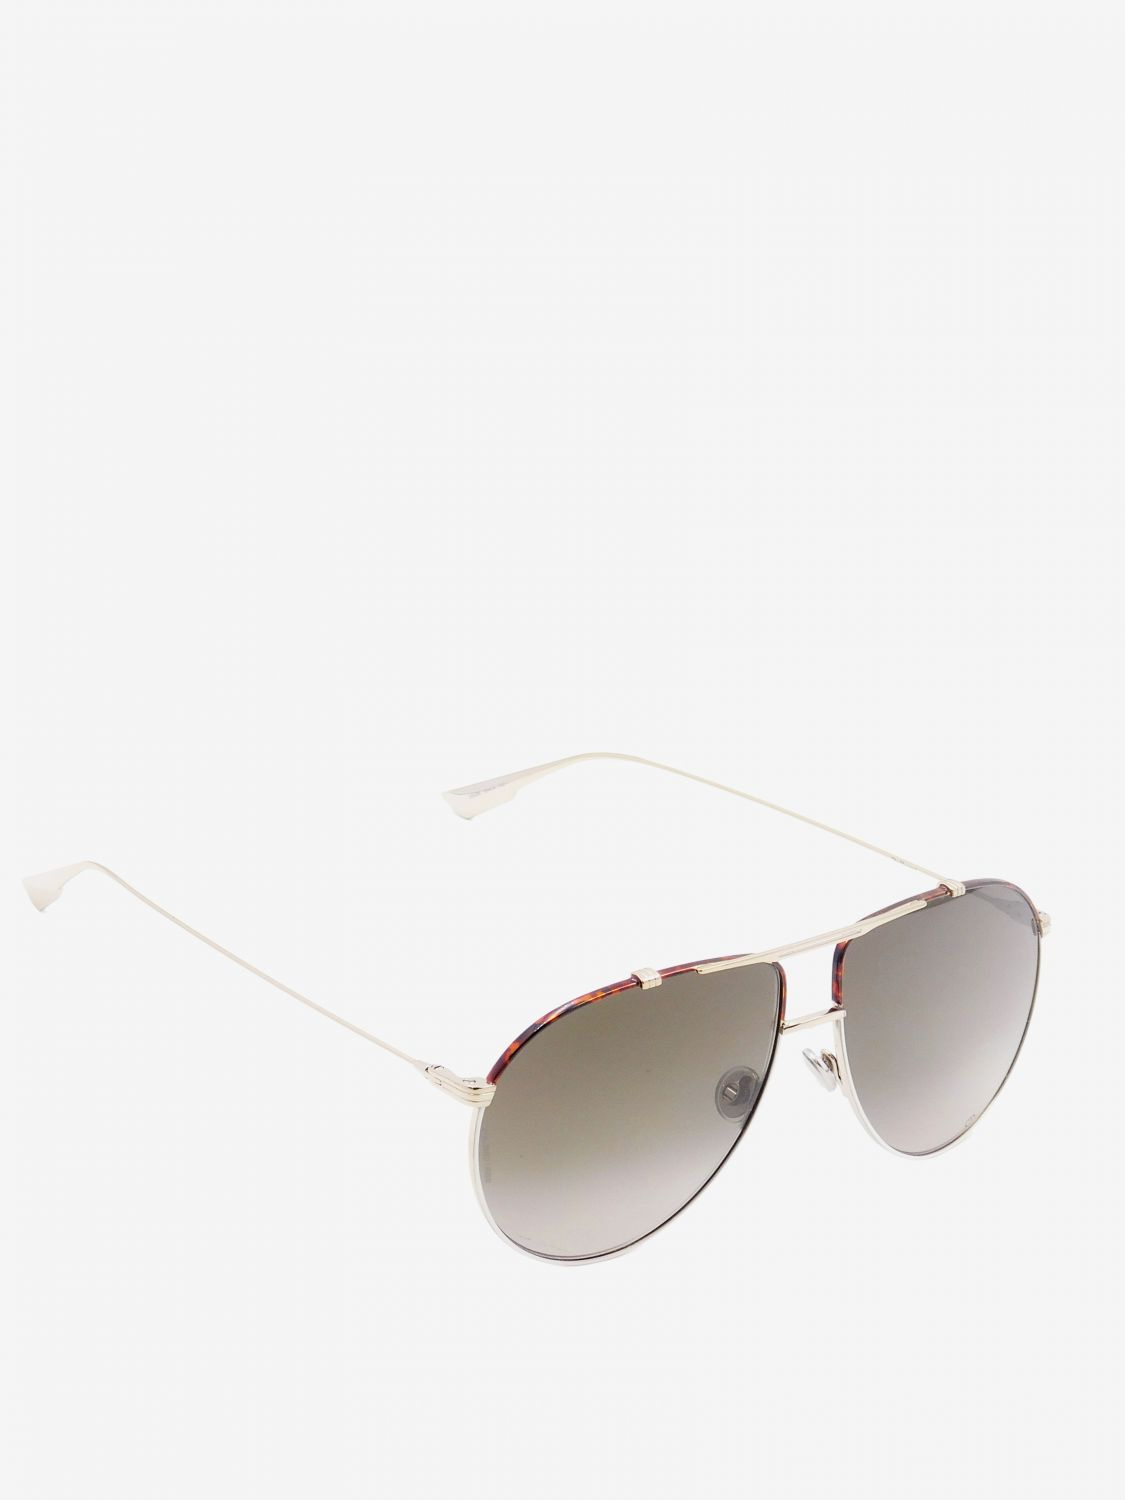 Glasses Christian Dior: Glasses women Christian Dior gold 1